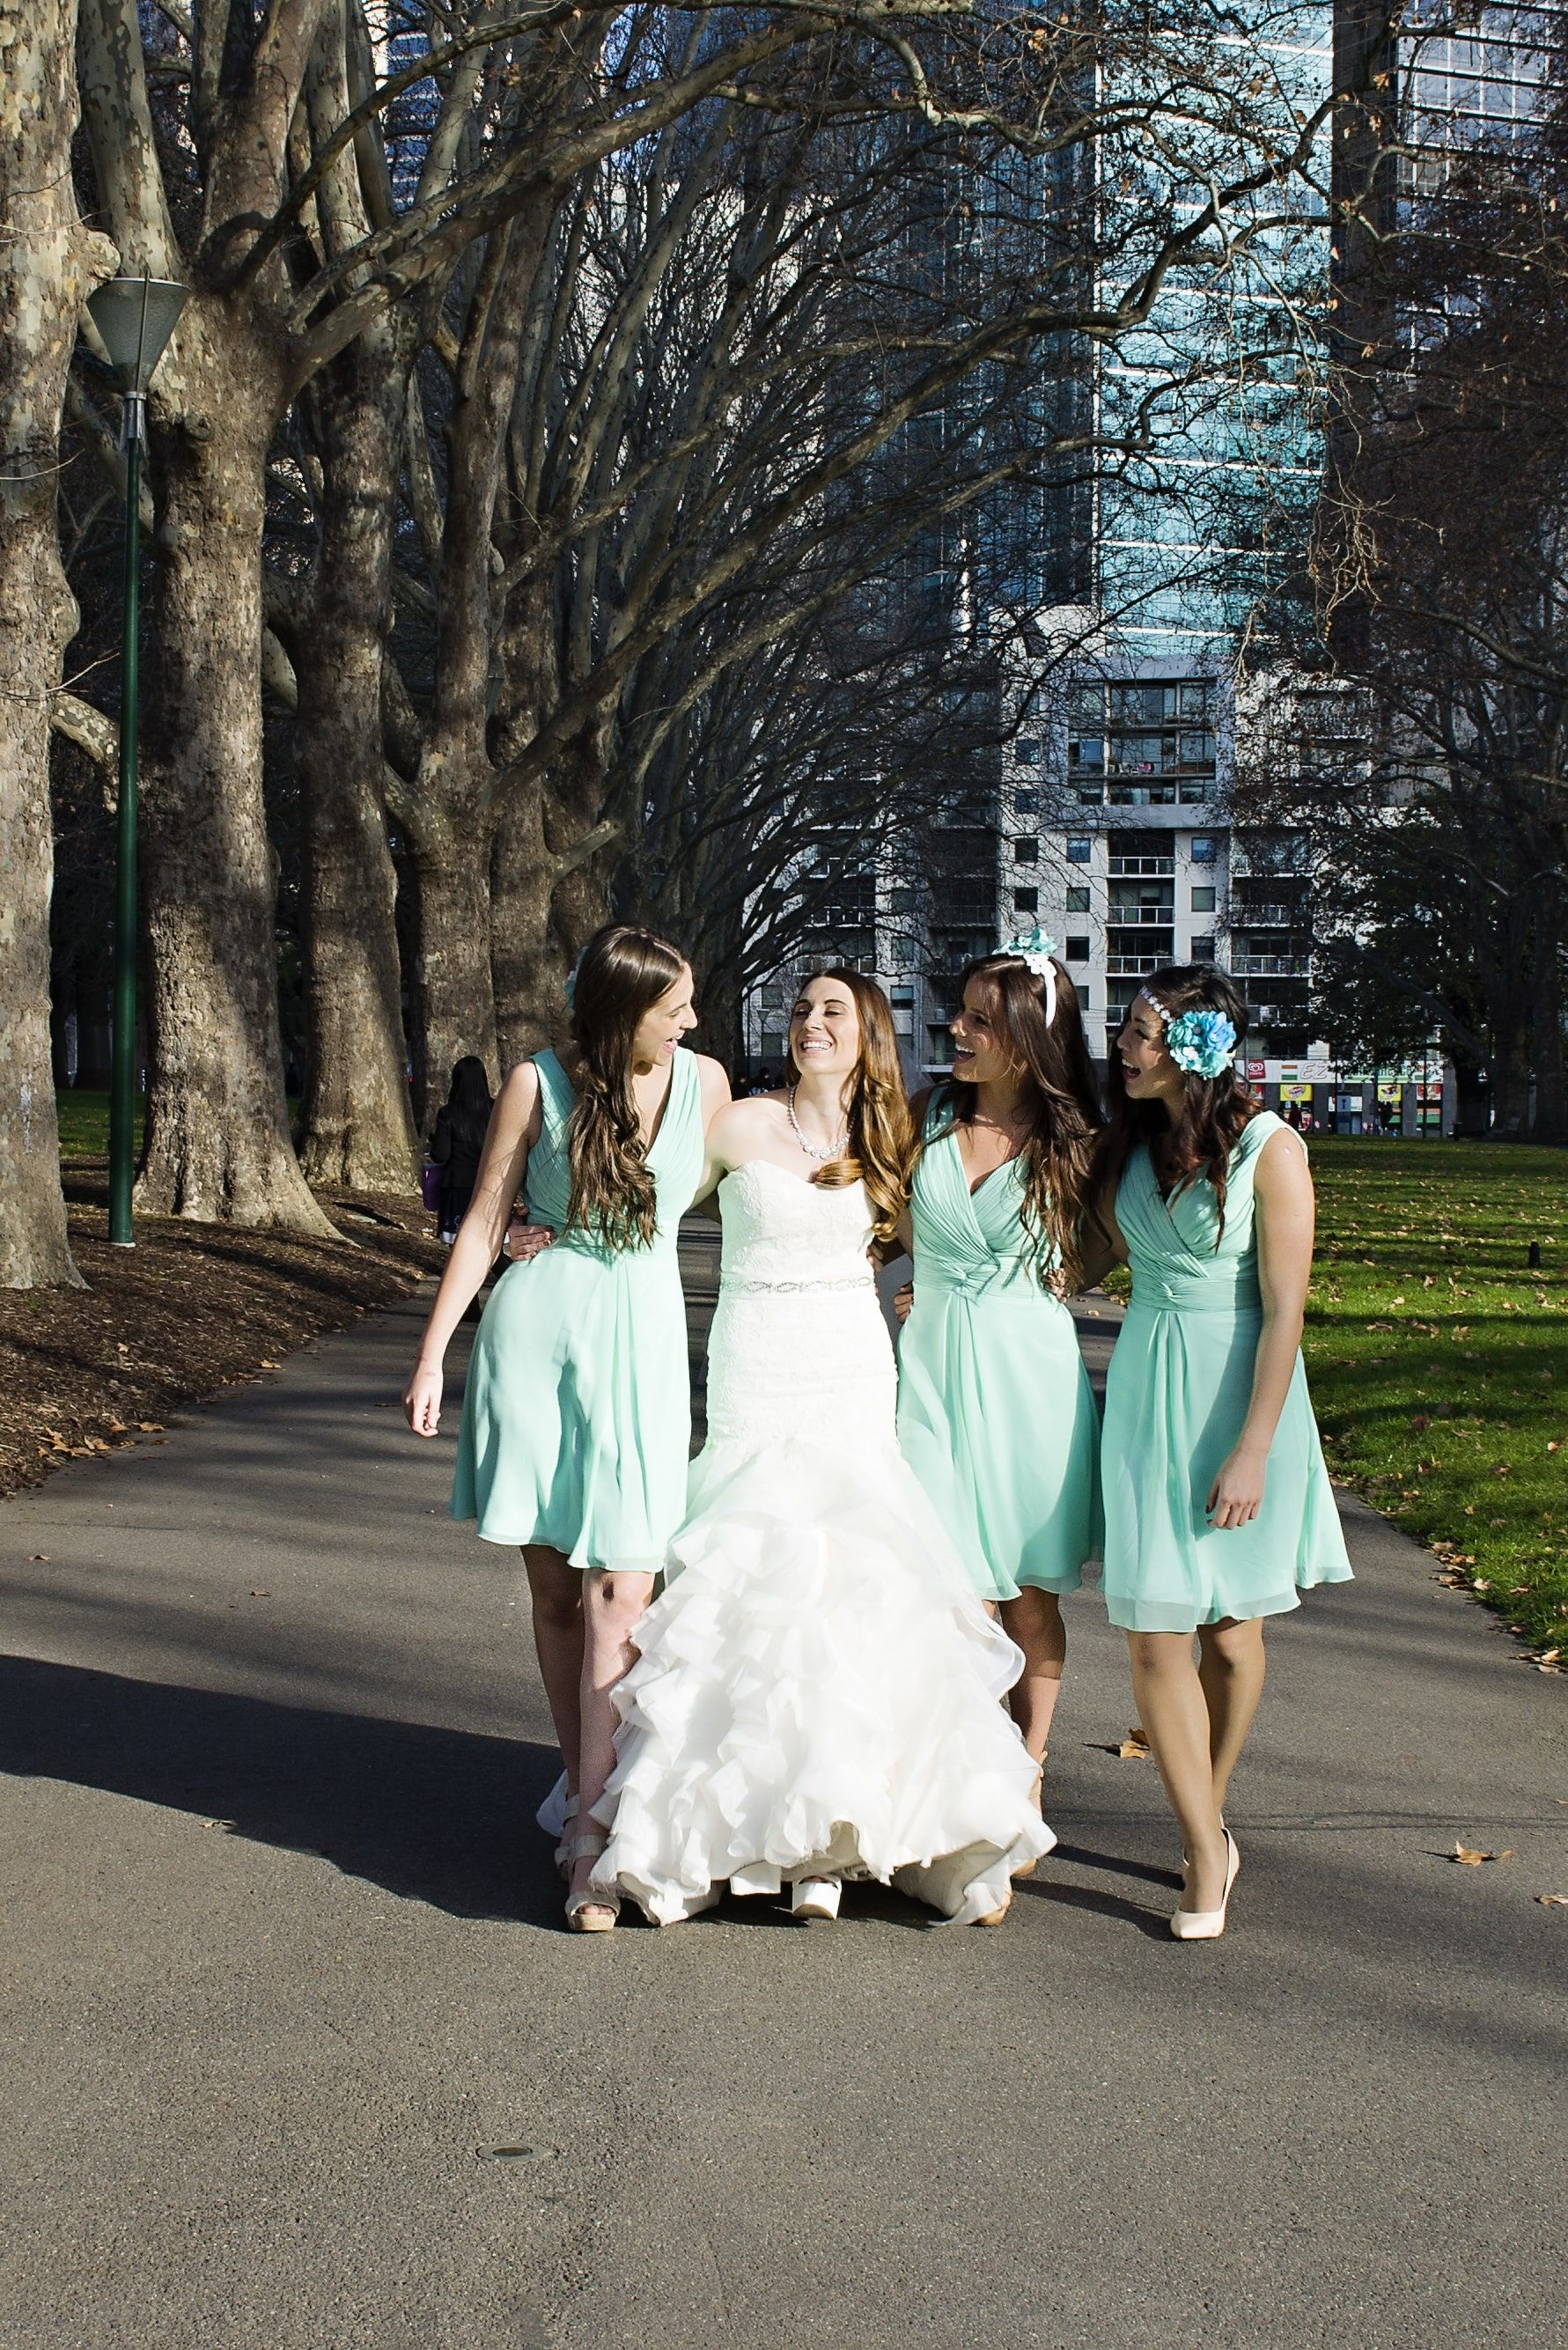 Renting wedding dresses  Why buy a dress that youull never wear again Hiring bridesmaid